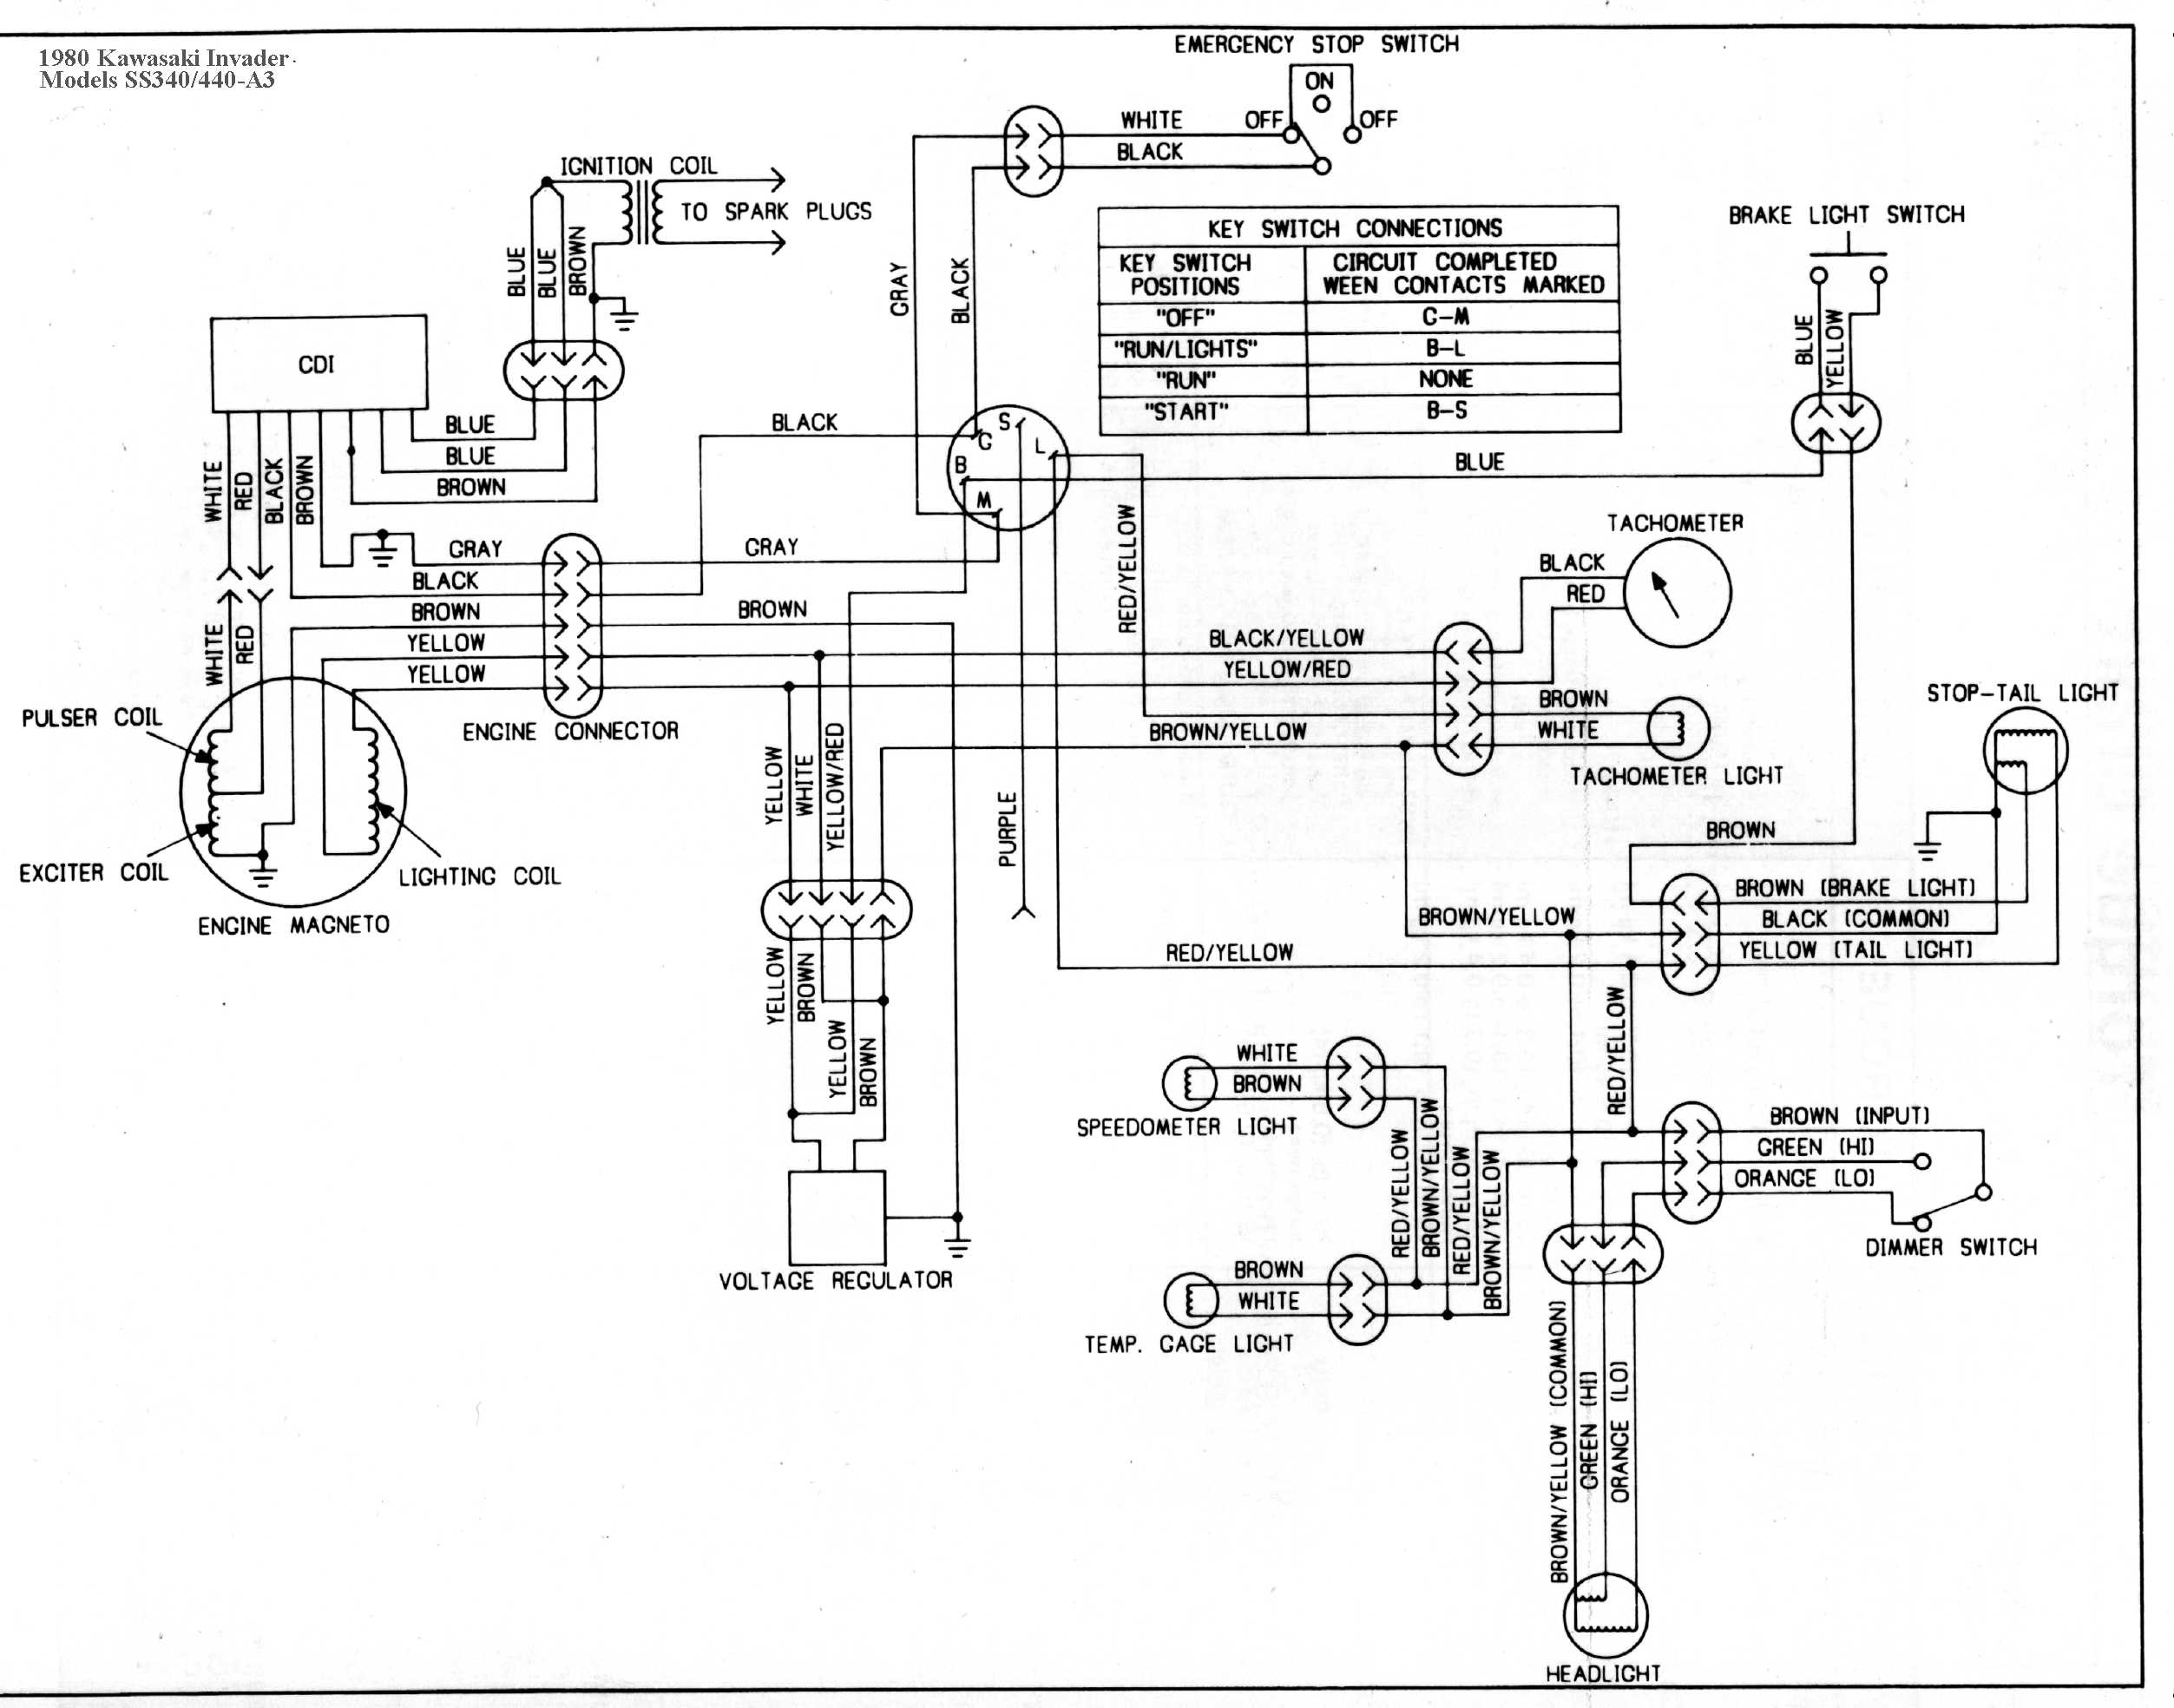 Kawasaki 89 Cavalier Wiring Diagram 1980 Invader Ltd